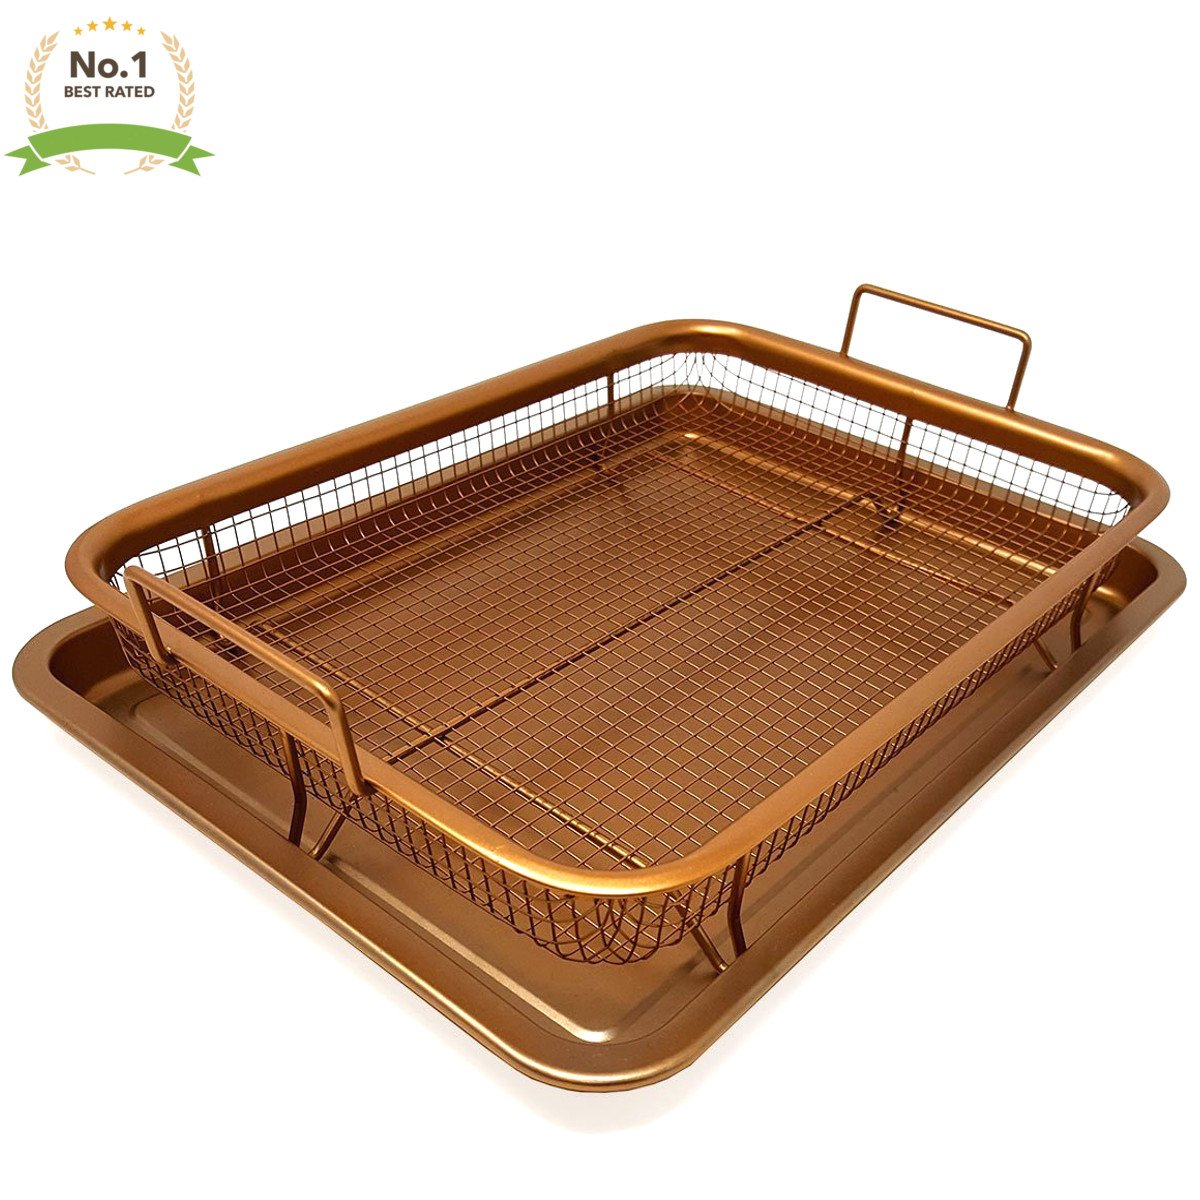 #1 Copper Oven Air Fryer Crisper Nonstick 2 Piece Tray With Mesh Basket for Oil-Free Air Frying